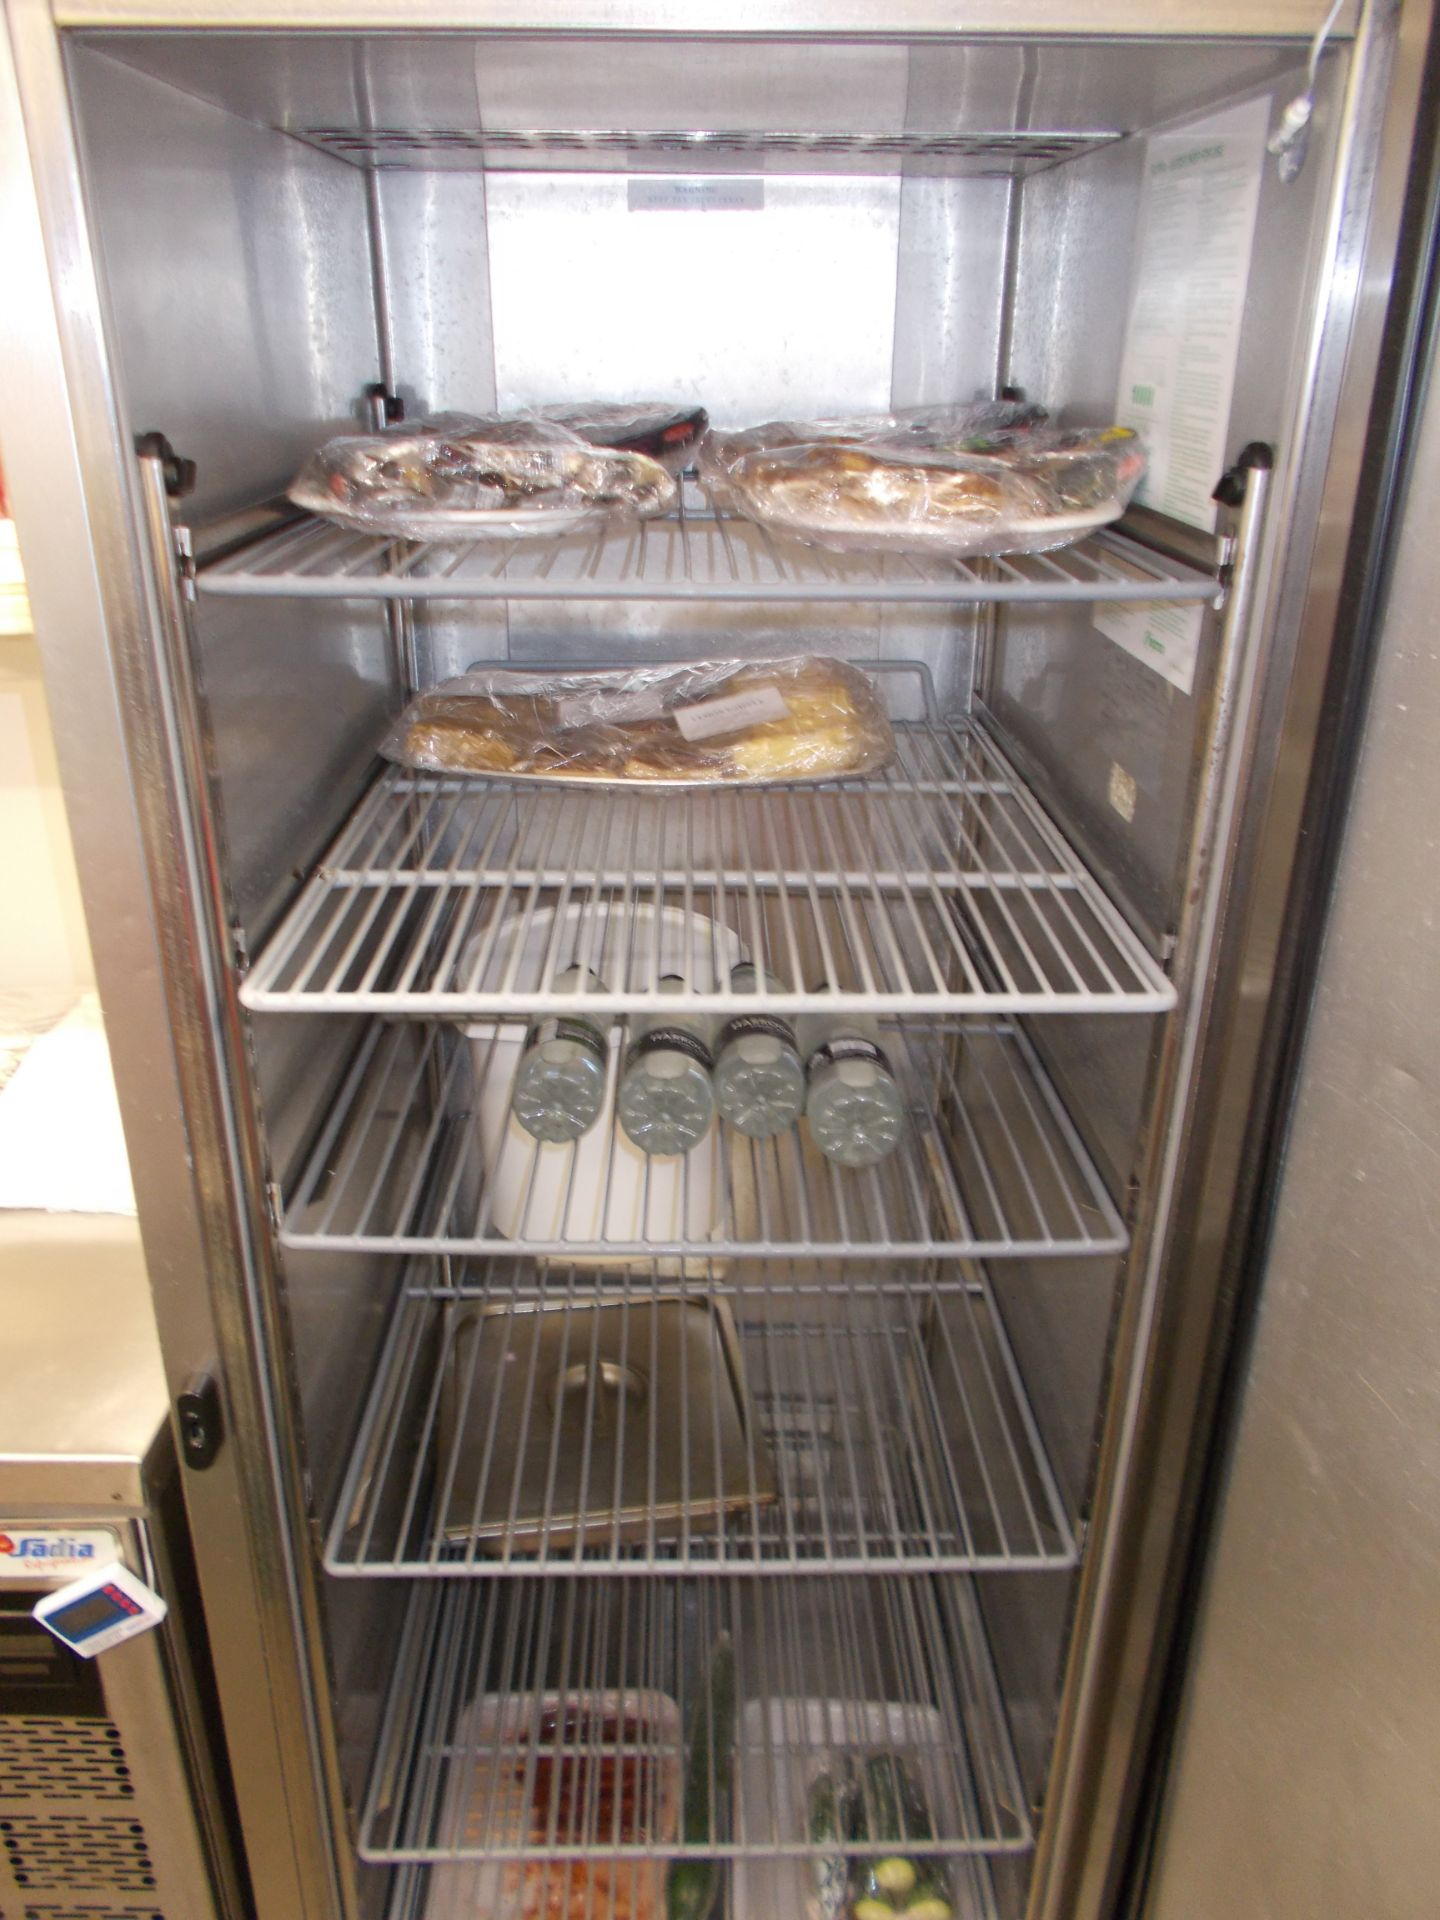 Foster Supra upright commercial refrigerator. Dimensions: H: 6ft 9 x D: 2ft 8 x W: 2ft 4 - Image 3 of 3